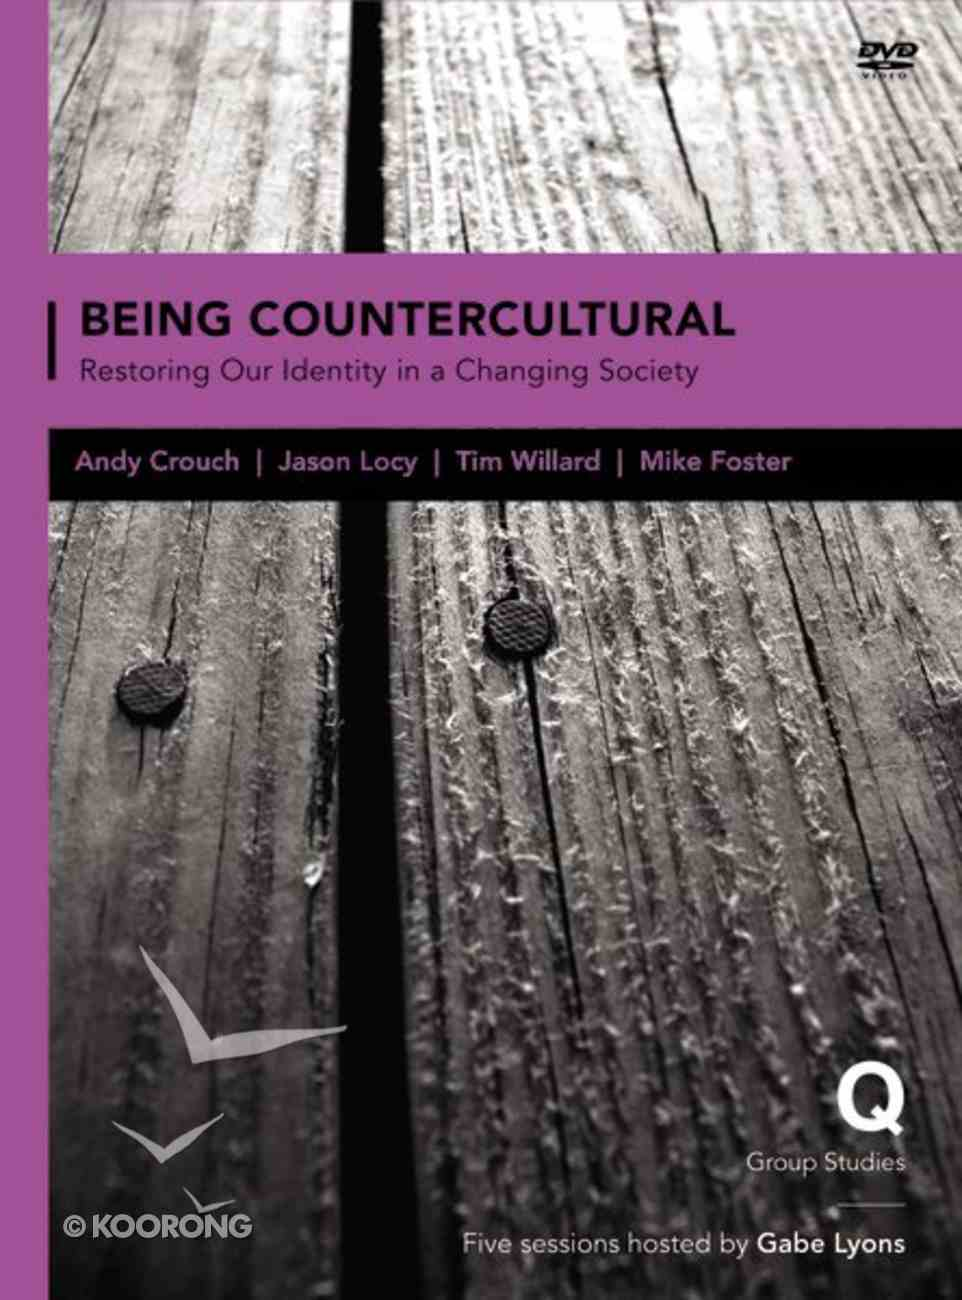 Being Countercultral (Q Society Room Series) DVD